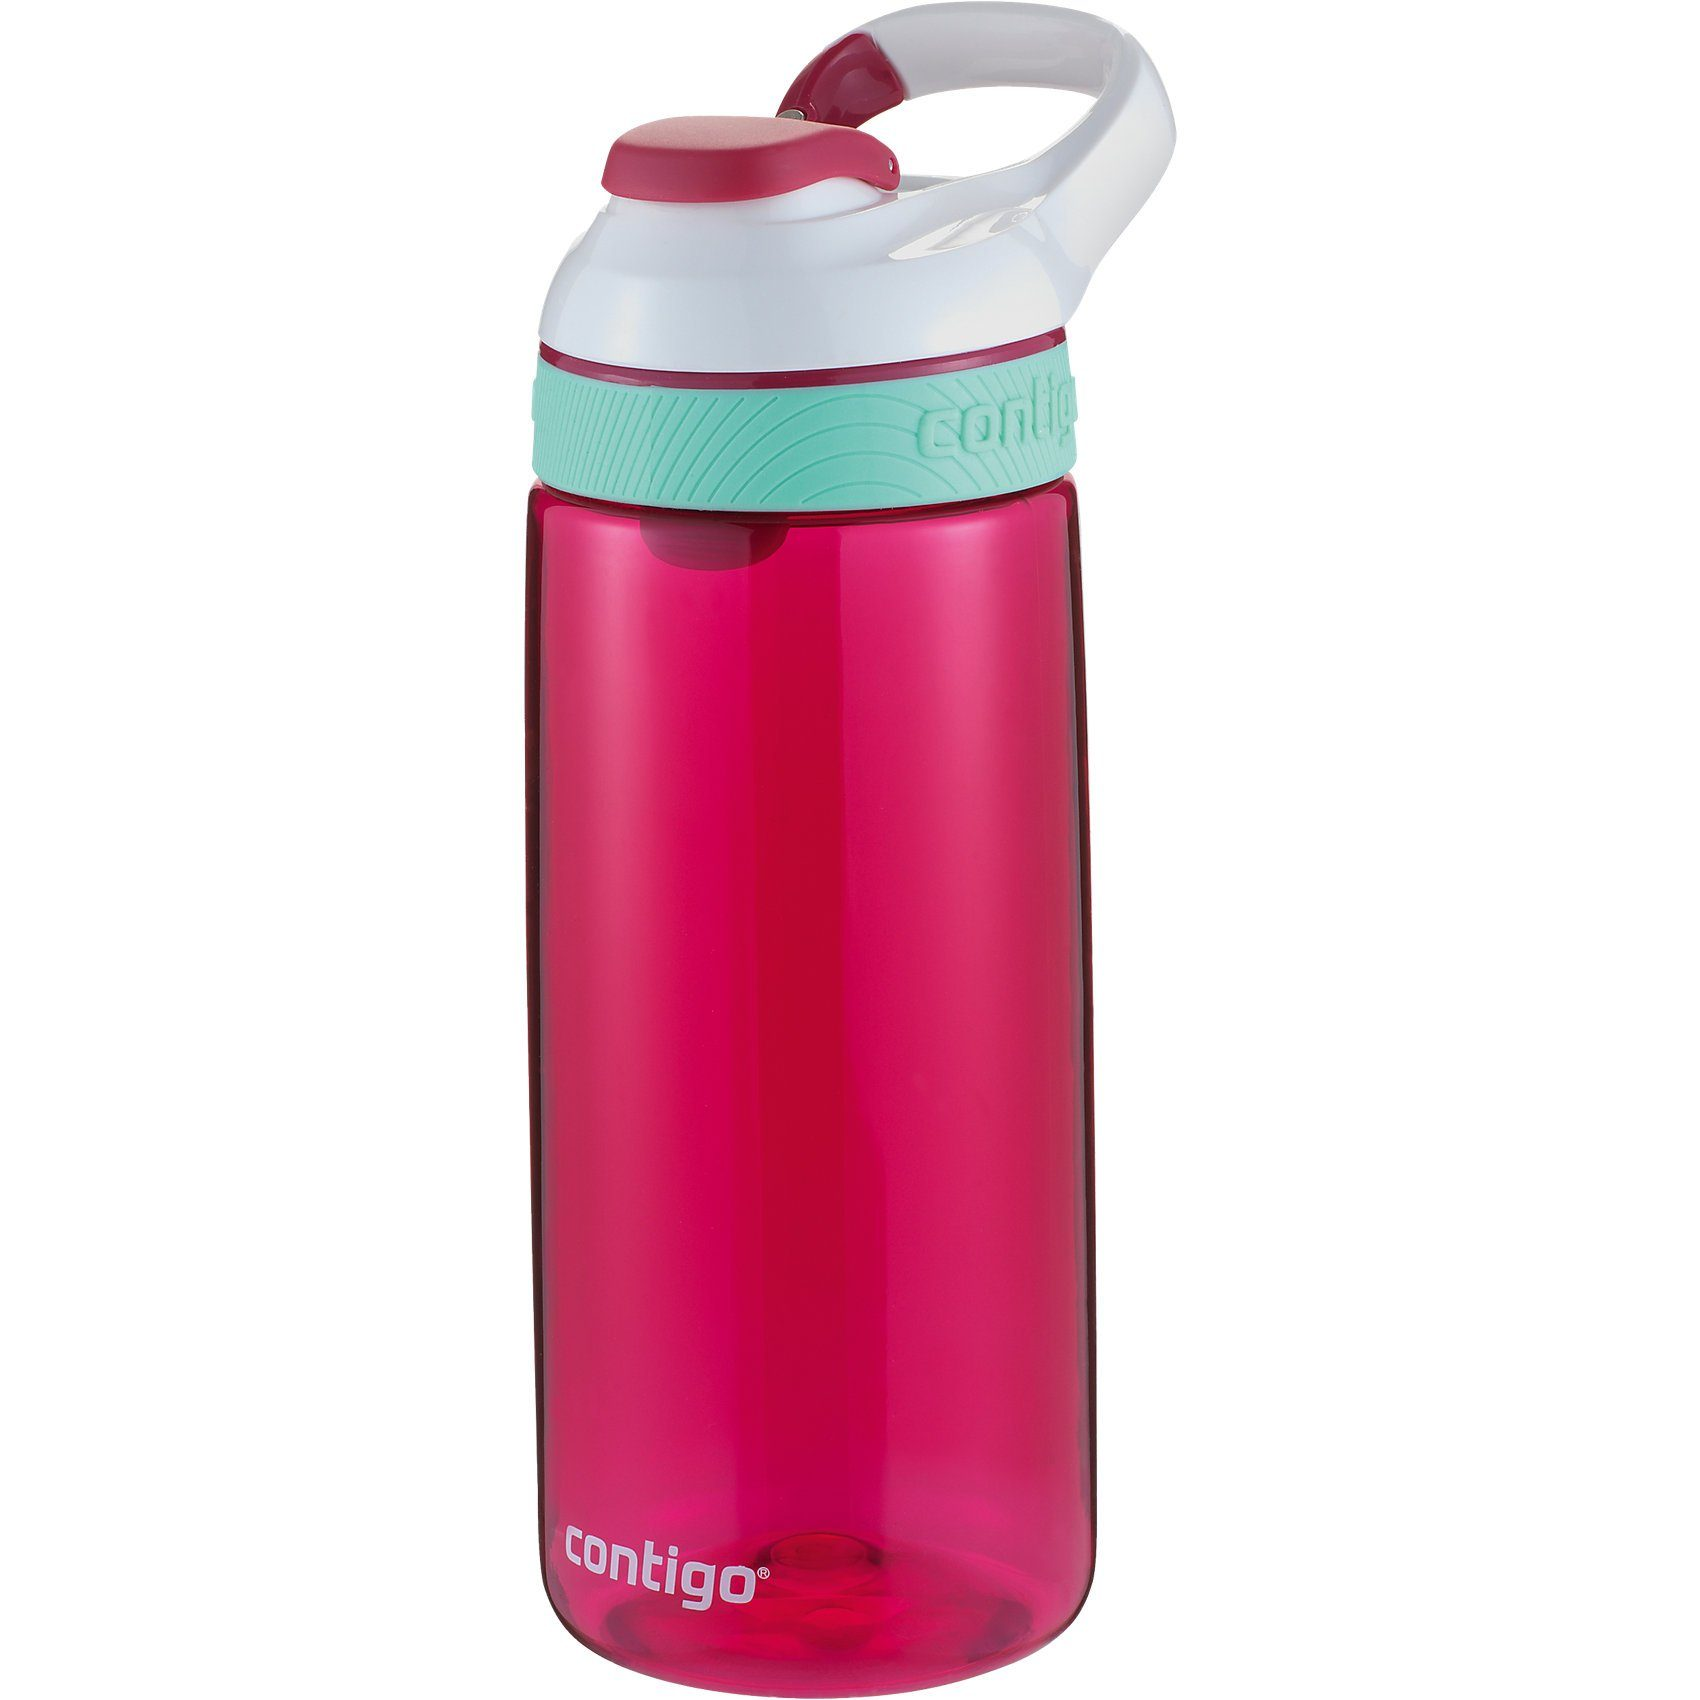 contigo Trinkflasche Courtney sangria white, 590 ml